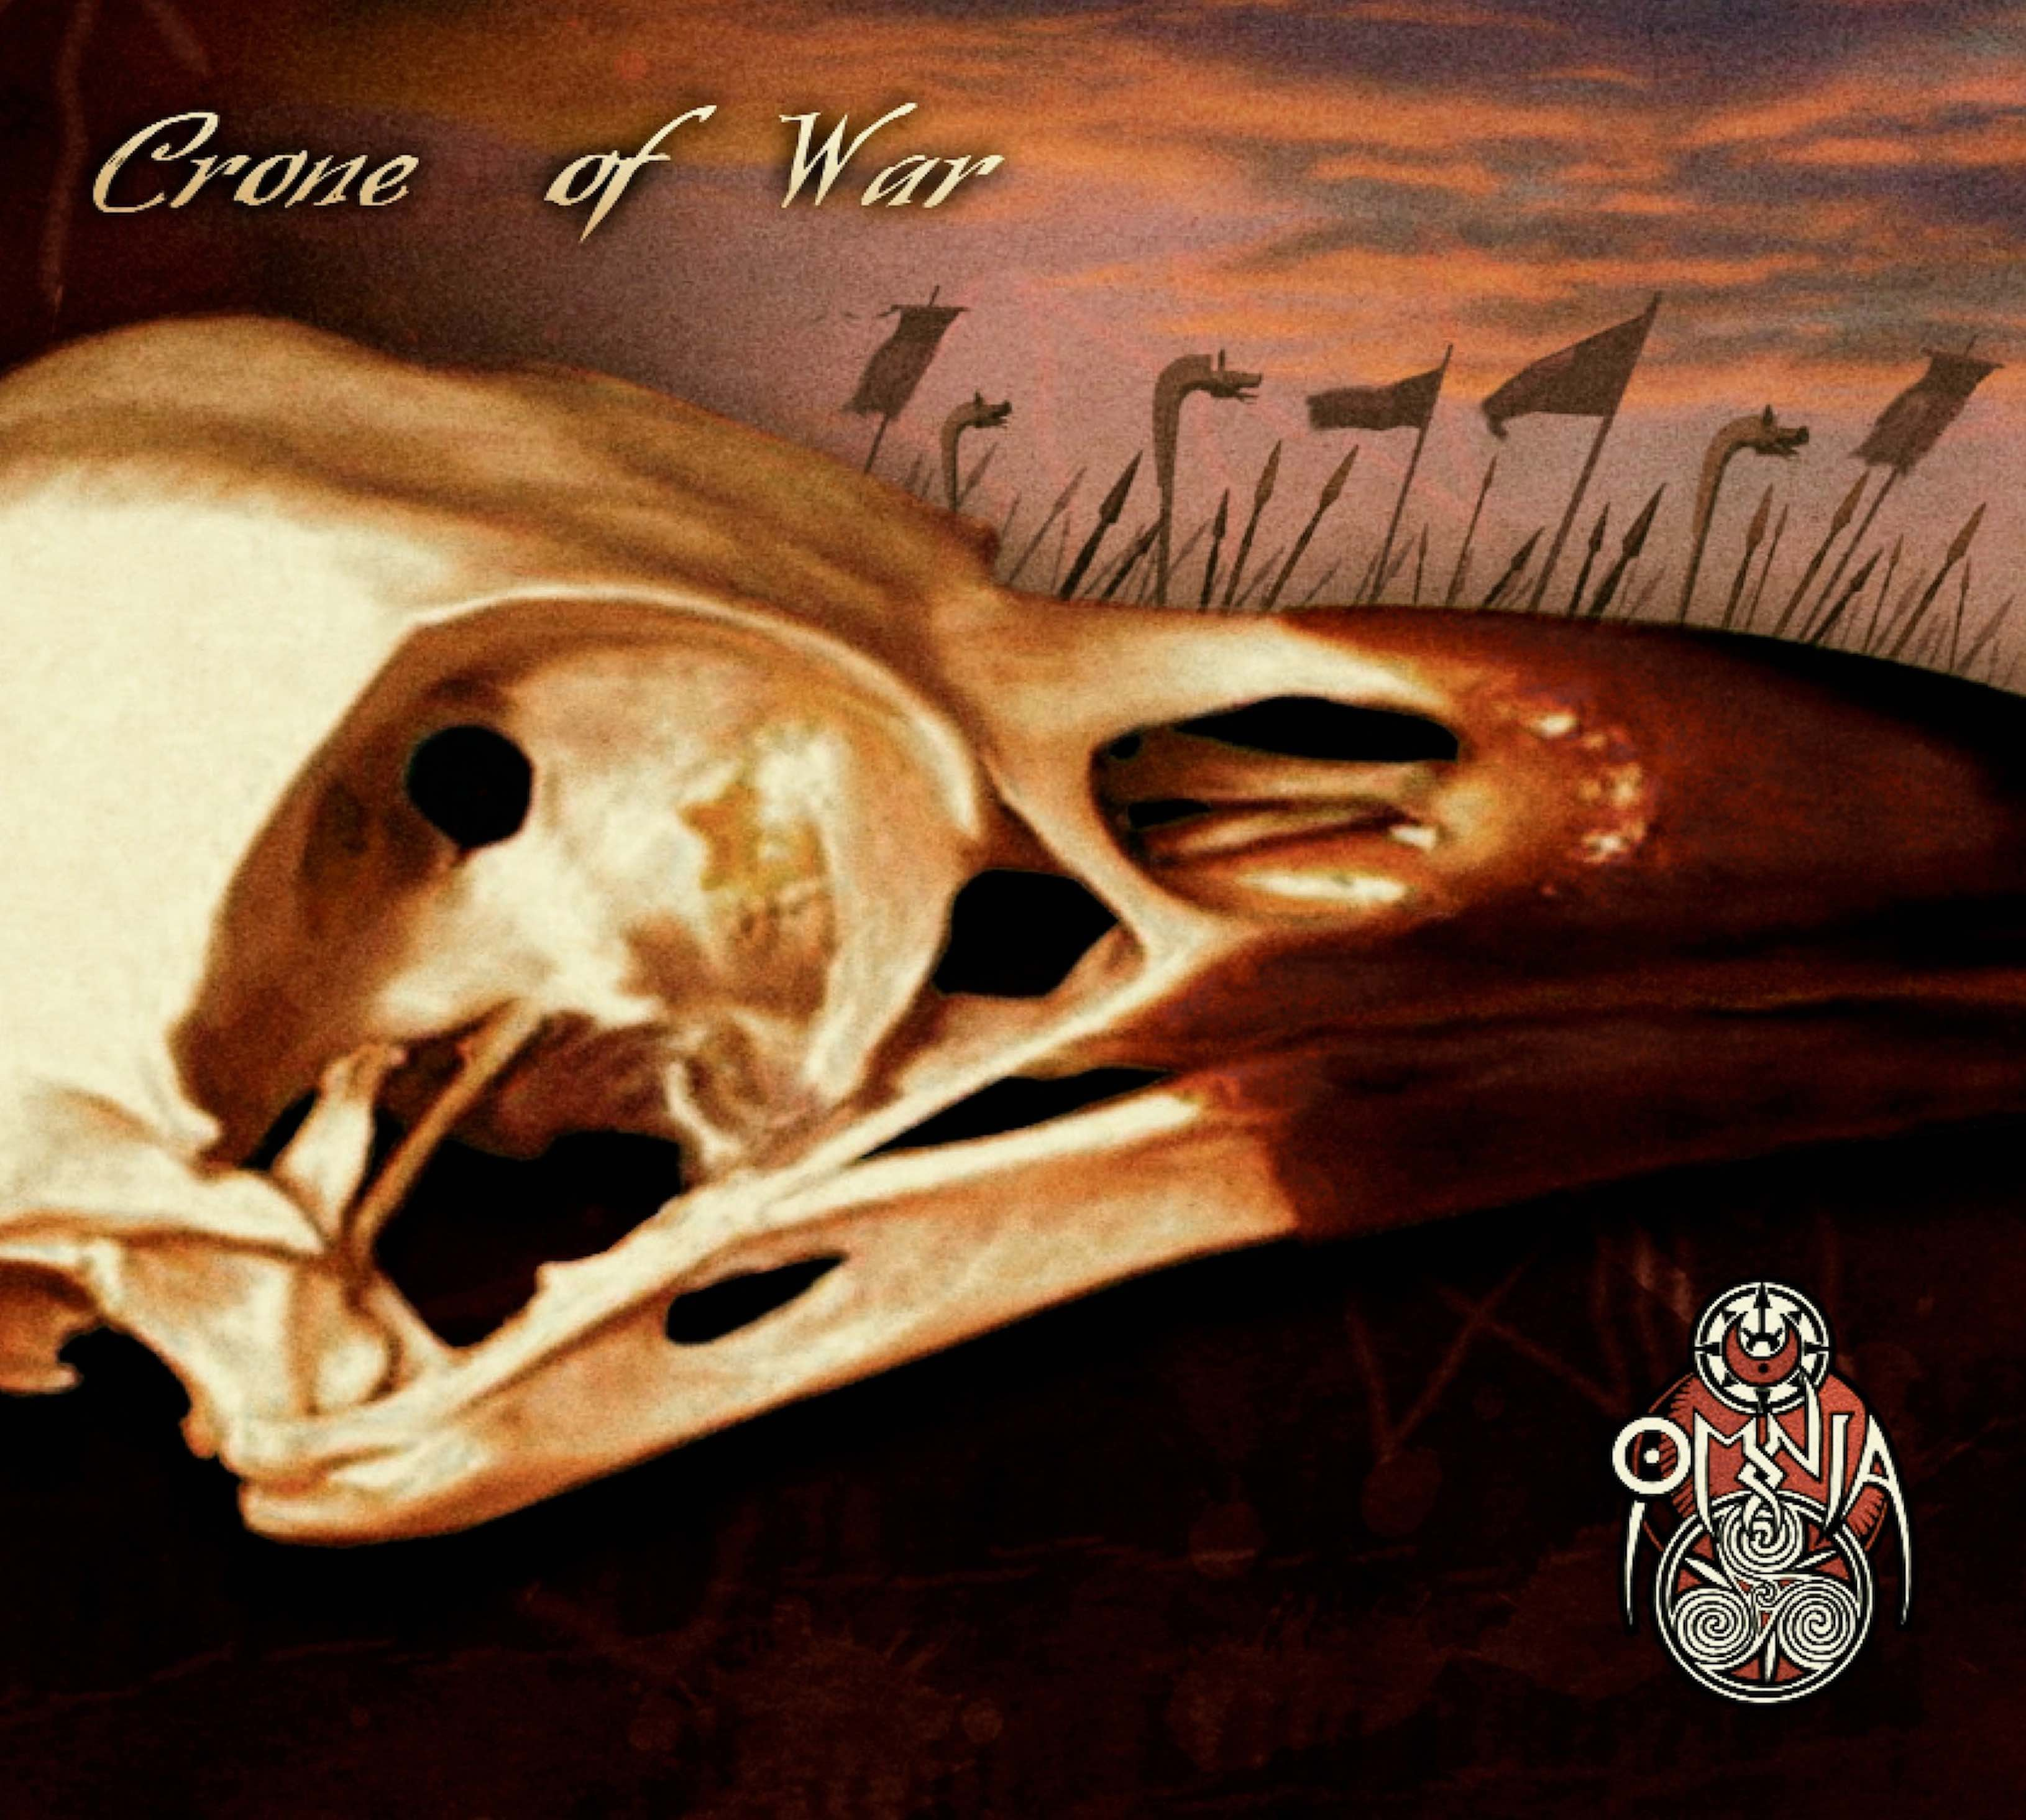 crone_of_war_cover_site_small.jpg